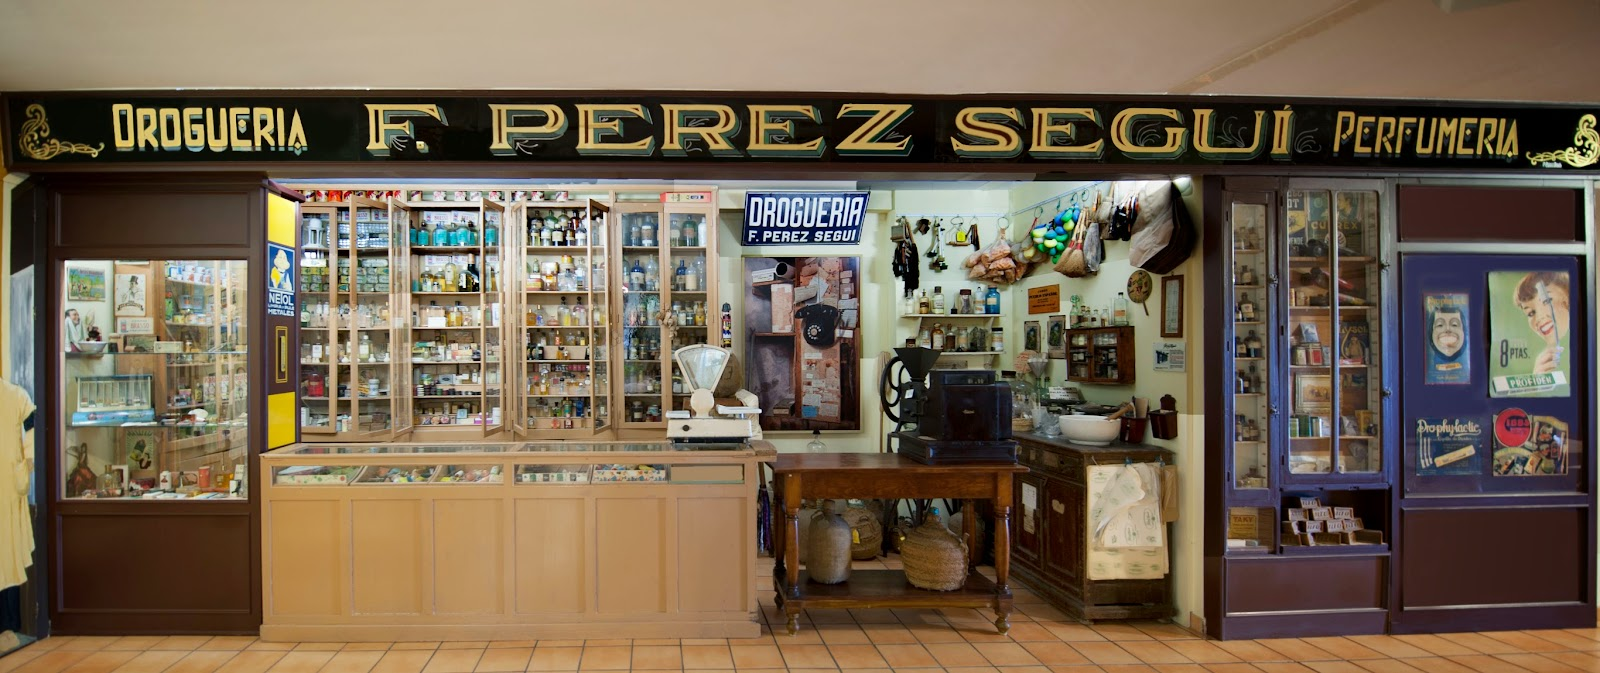 Old drugstore and perfumery